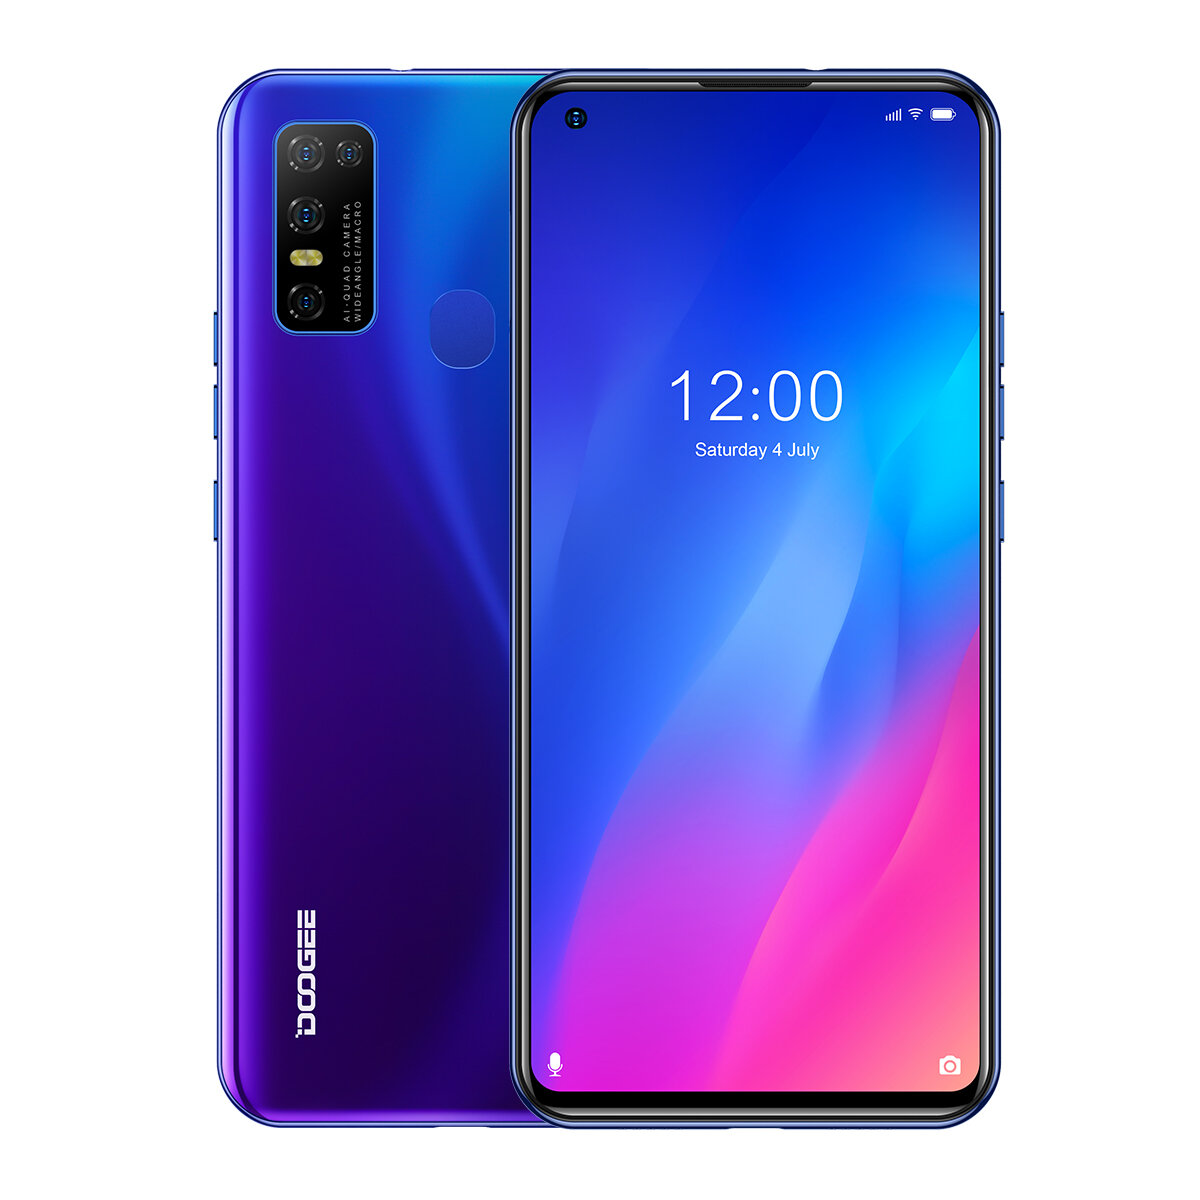 DOOGEE N30 Global Bands 6.55 inch Perforated Screen Android 10.0 4180mAh 16MP AI Quad Rear Camera 4GB 128GB Helio A25 4G Smartphone - Blue